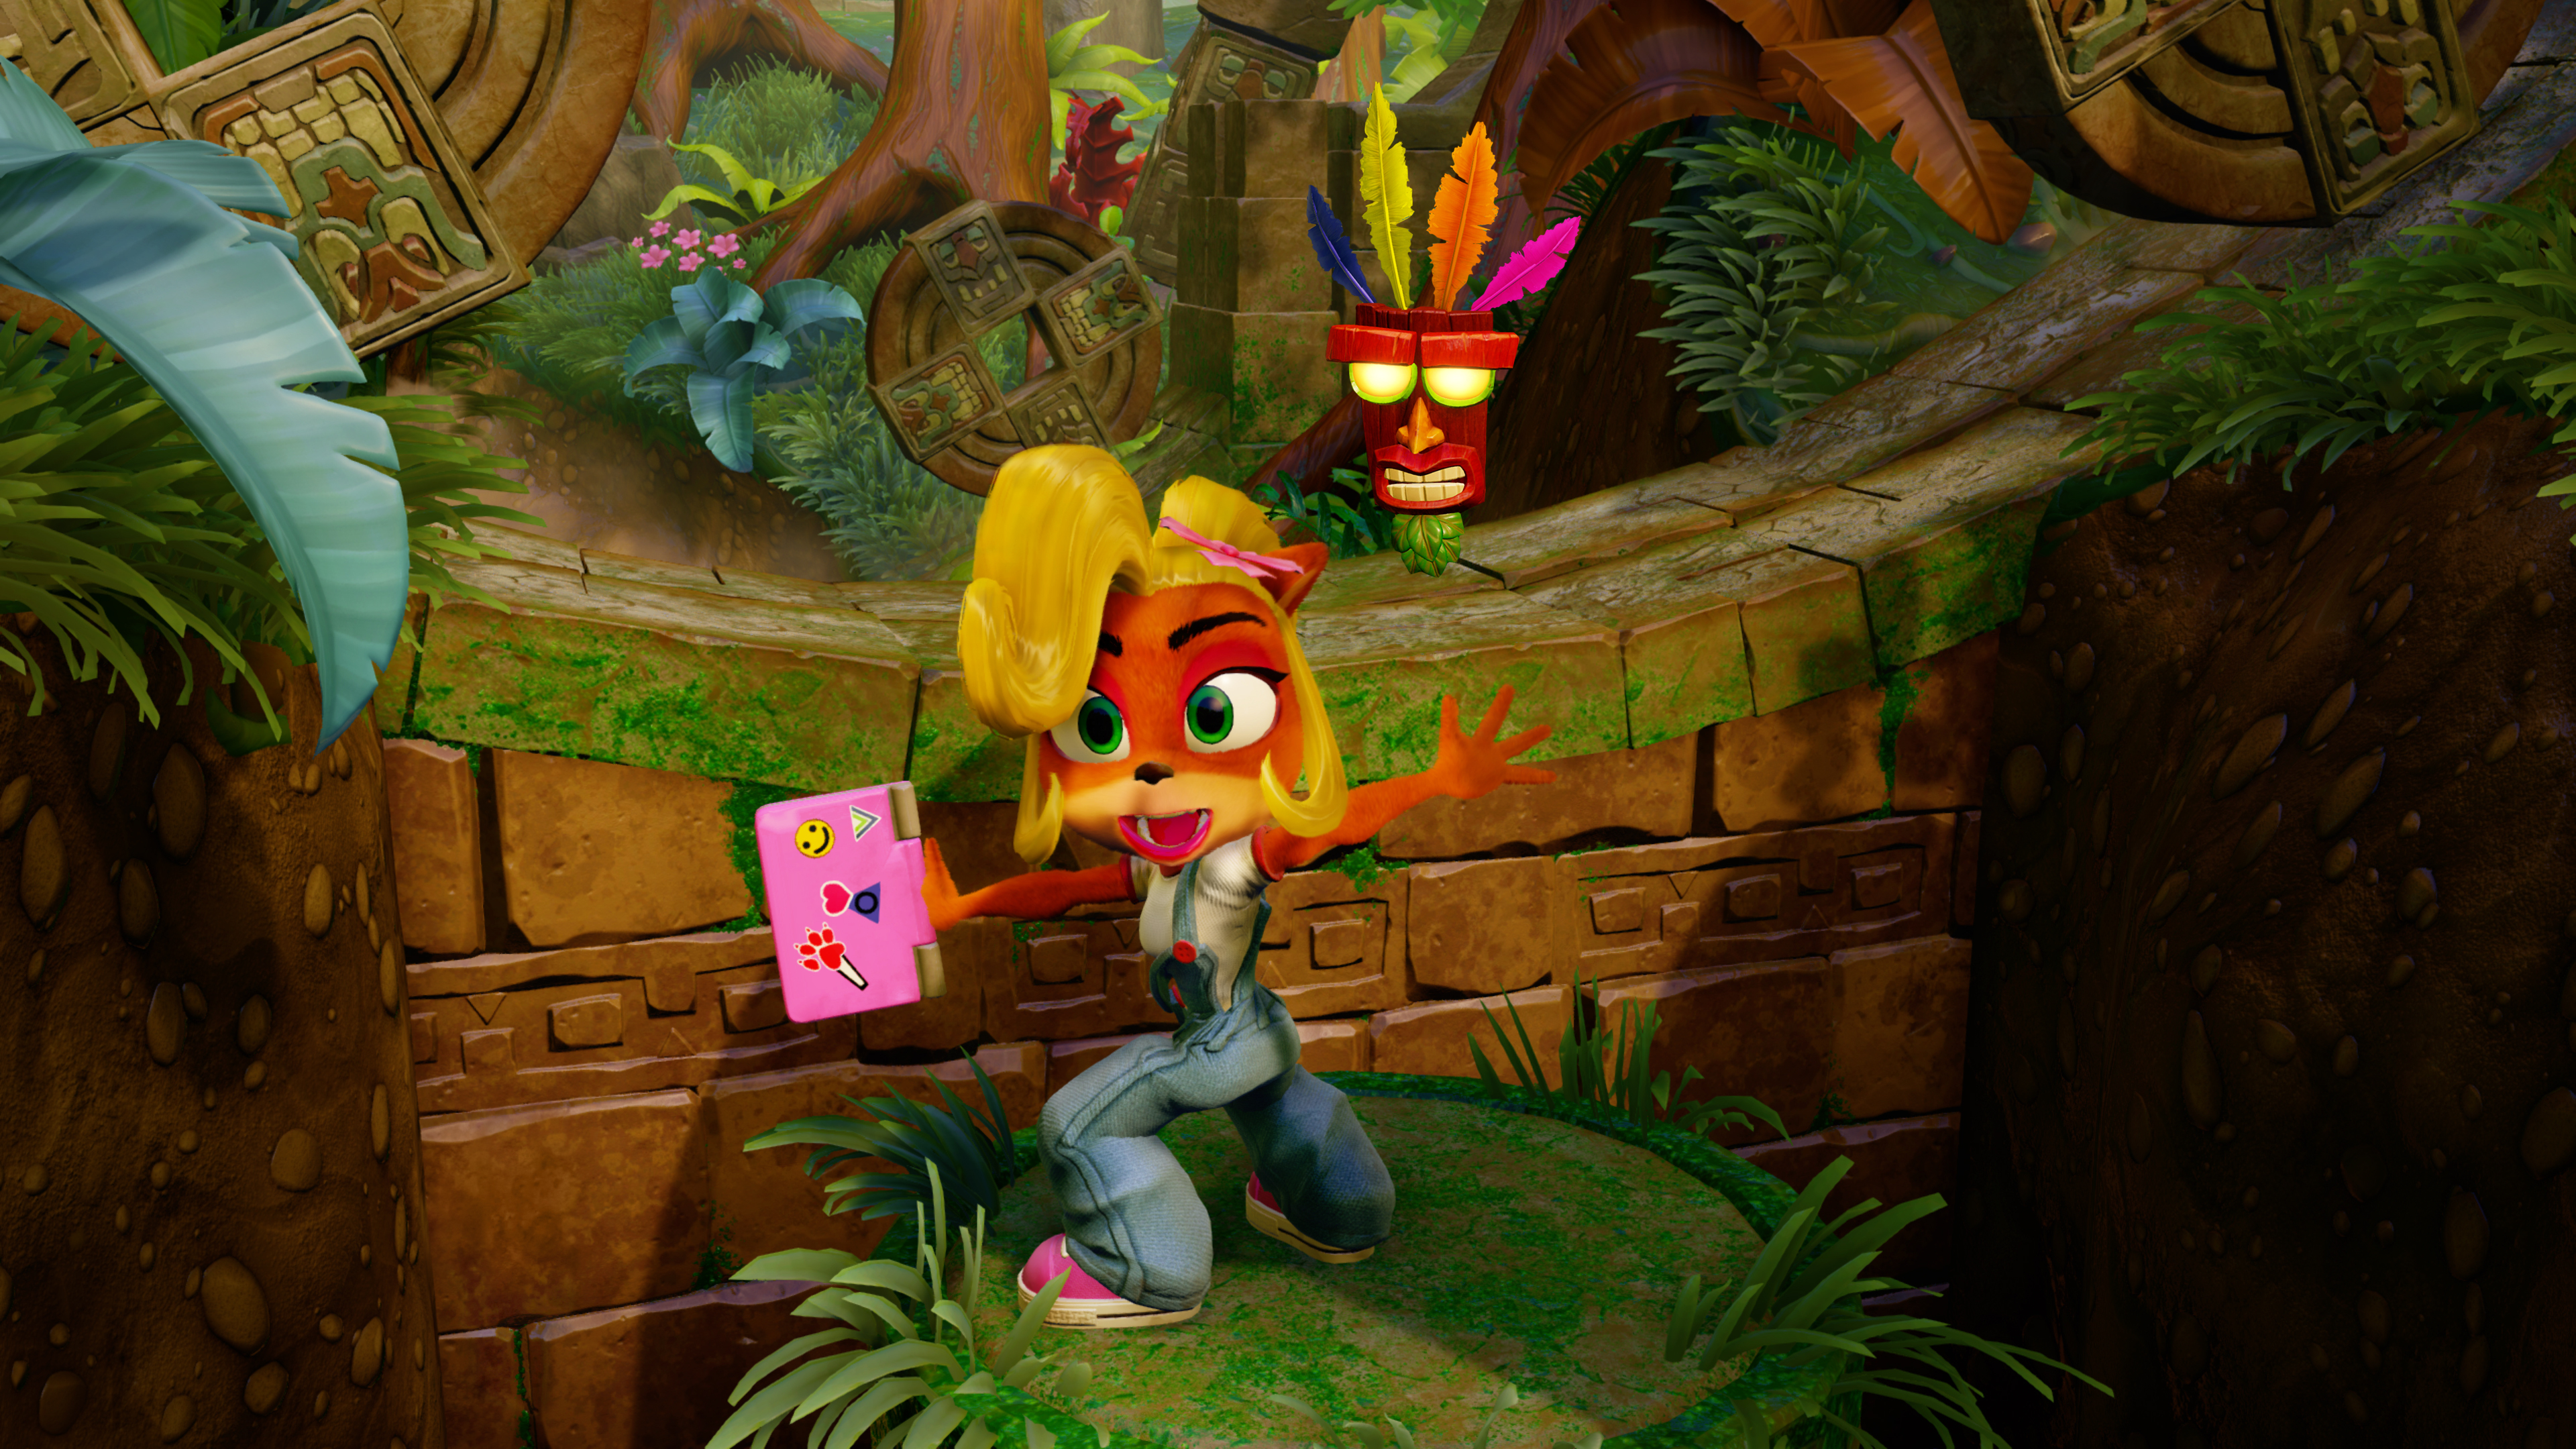 coco comes to crash the party in crash bandicoot n sane trilogy